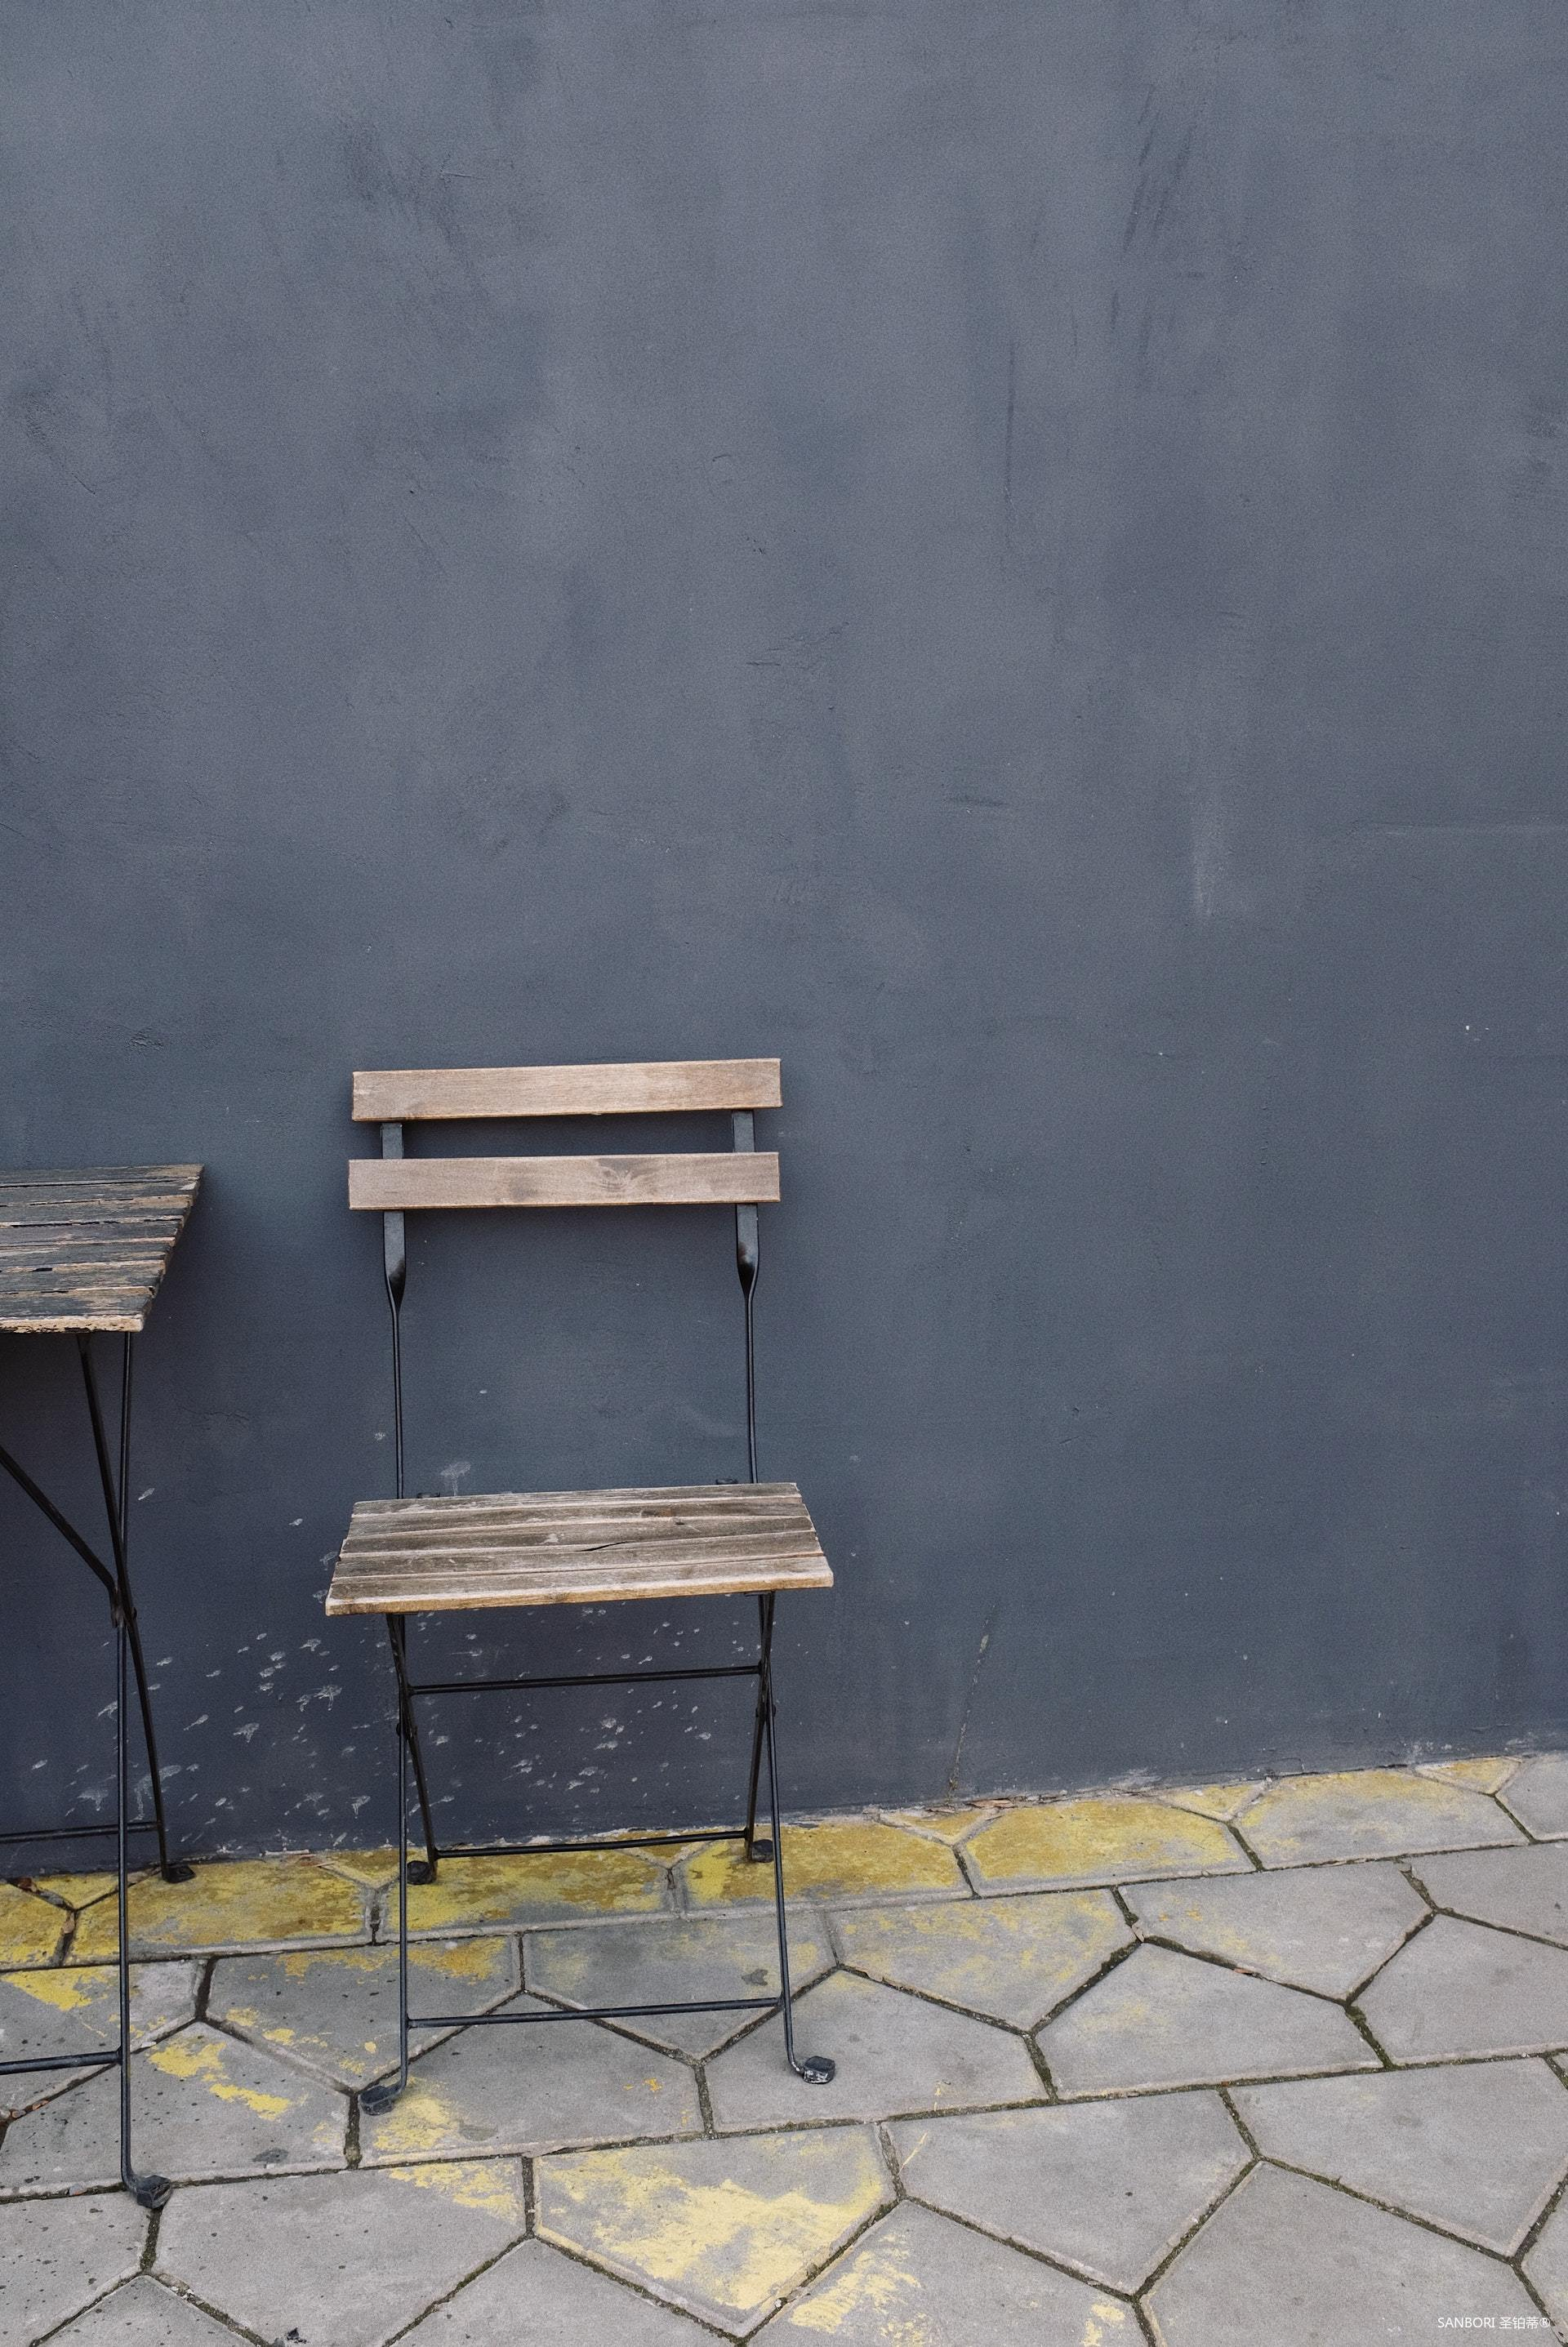 wooden-chair-and-table-placed-near-gray-wall-on-street-3964344.jpg